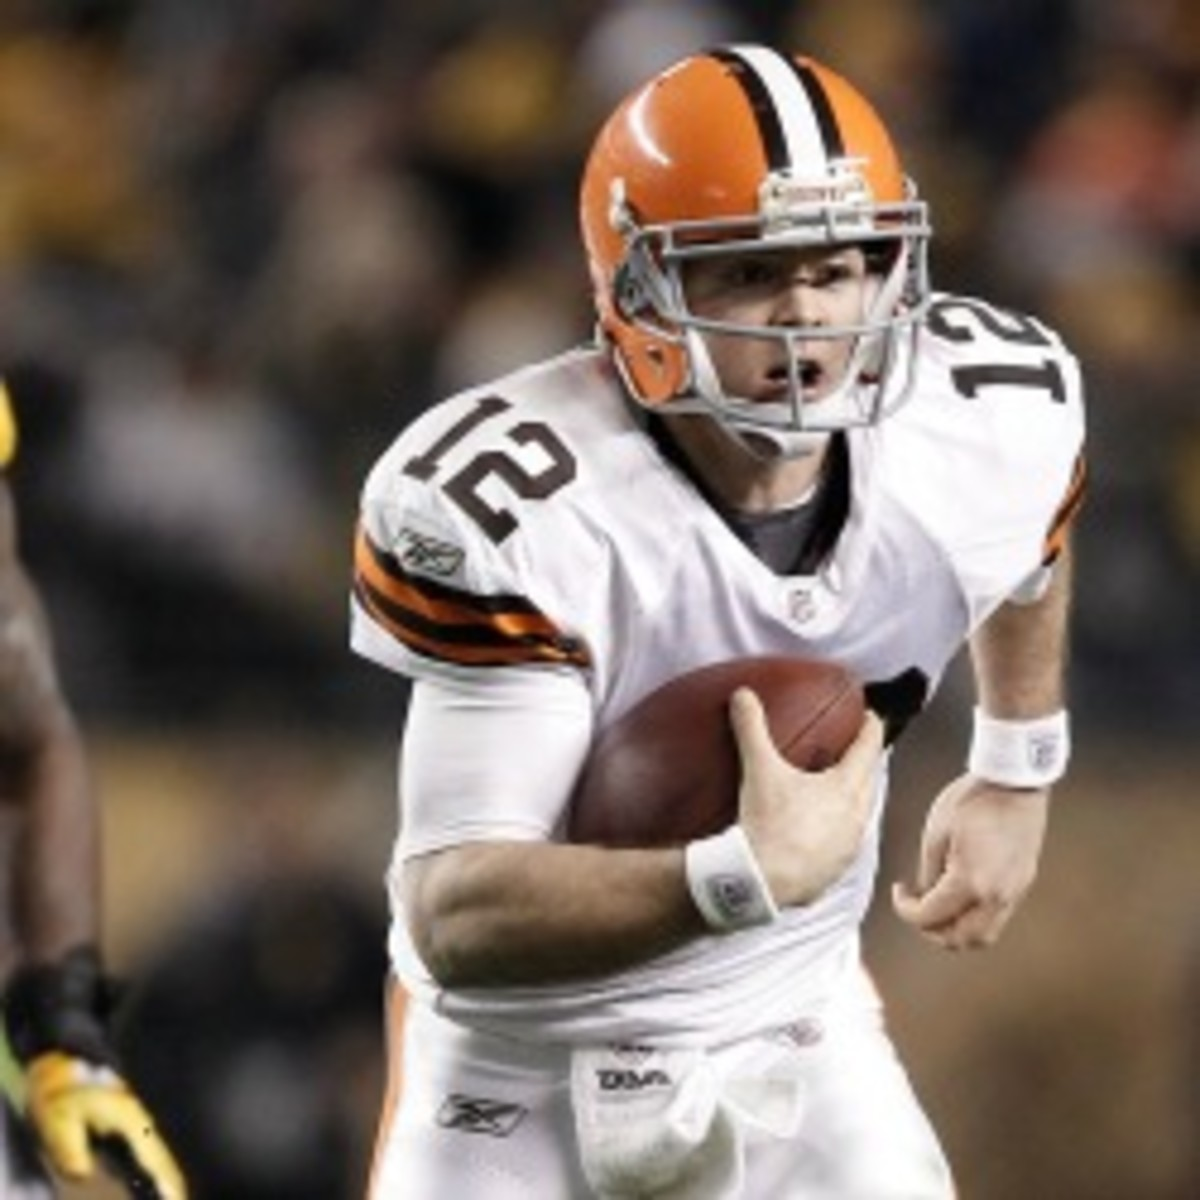 Browns backup quarterback Colt McCoy was traded to the 49ers. (Jared Wickerham/Getty Images)